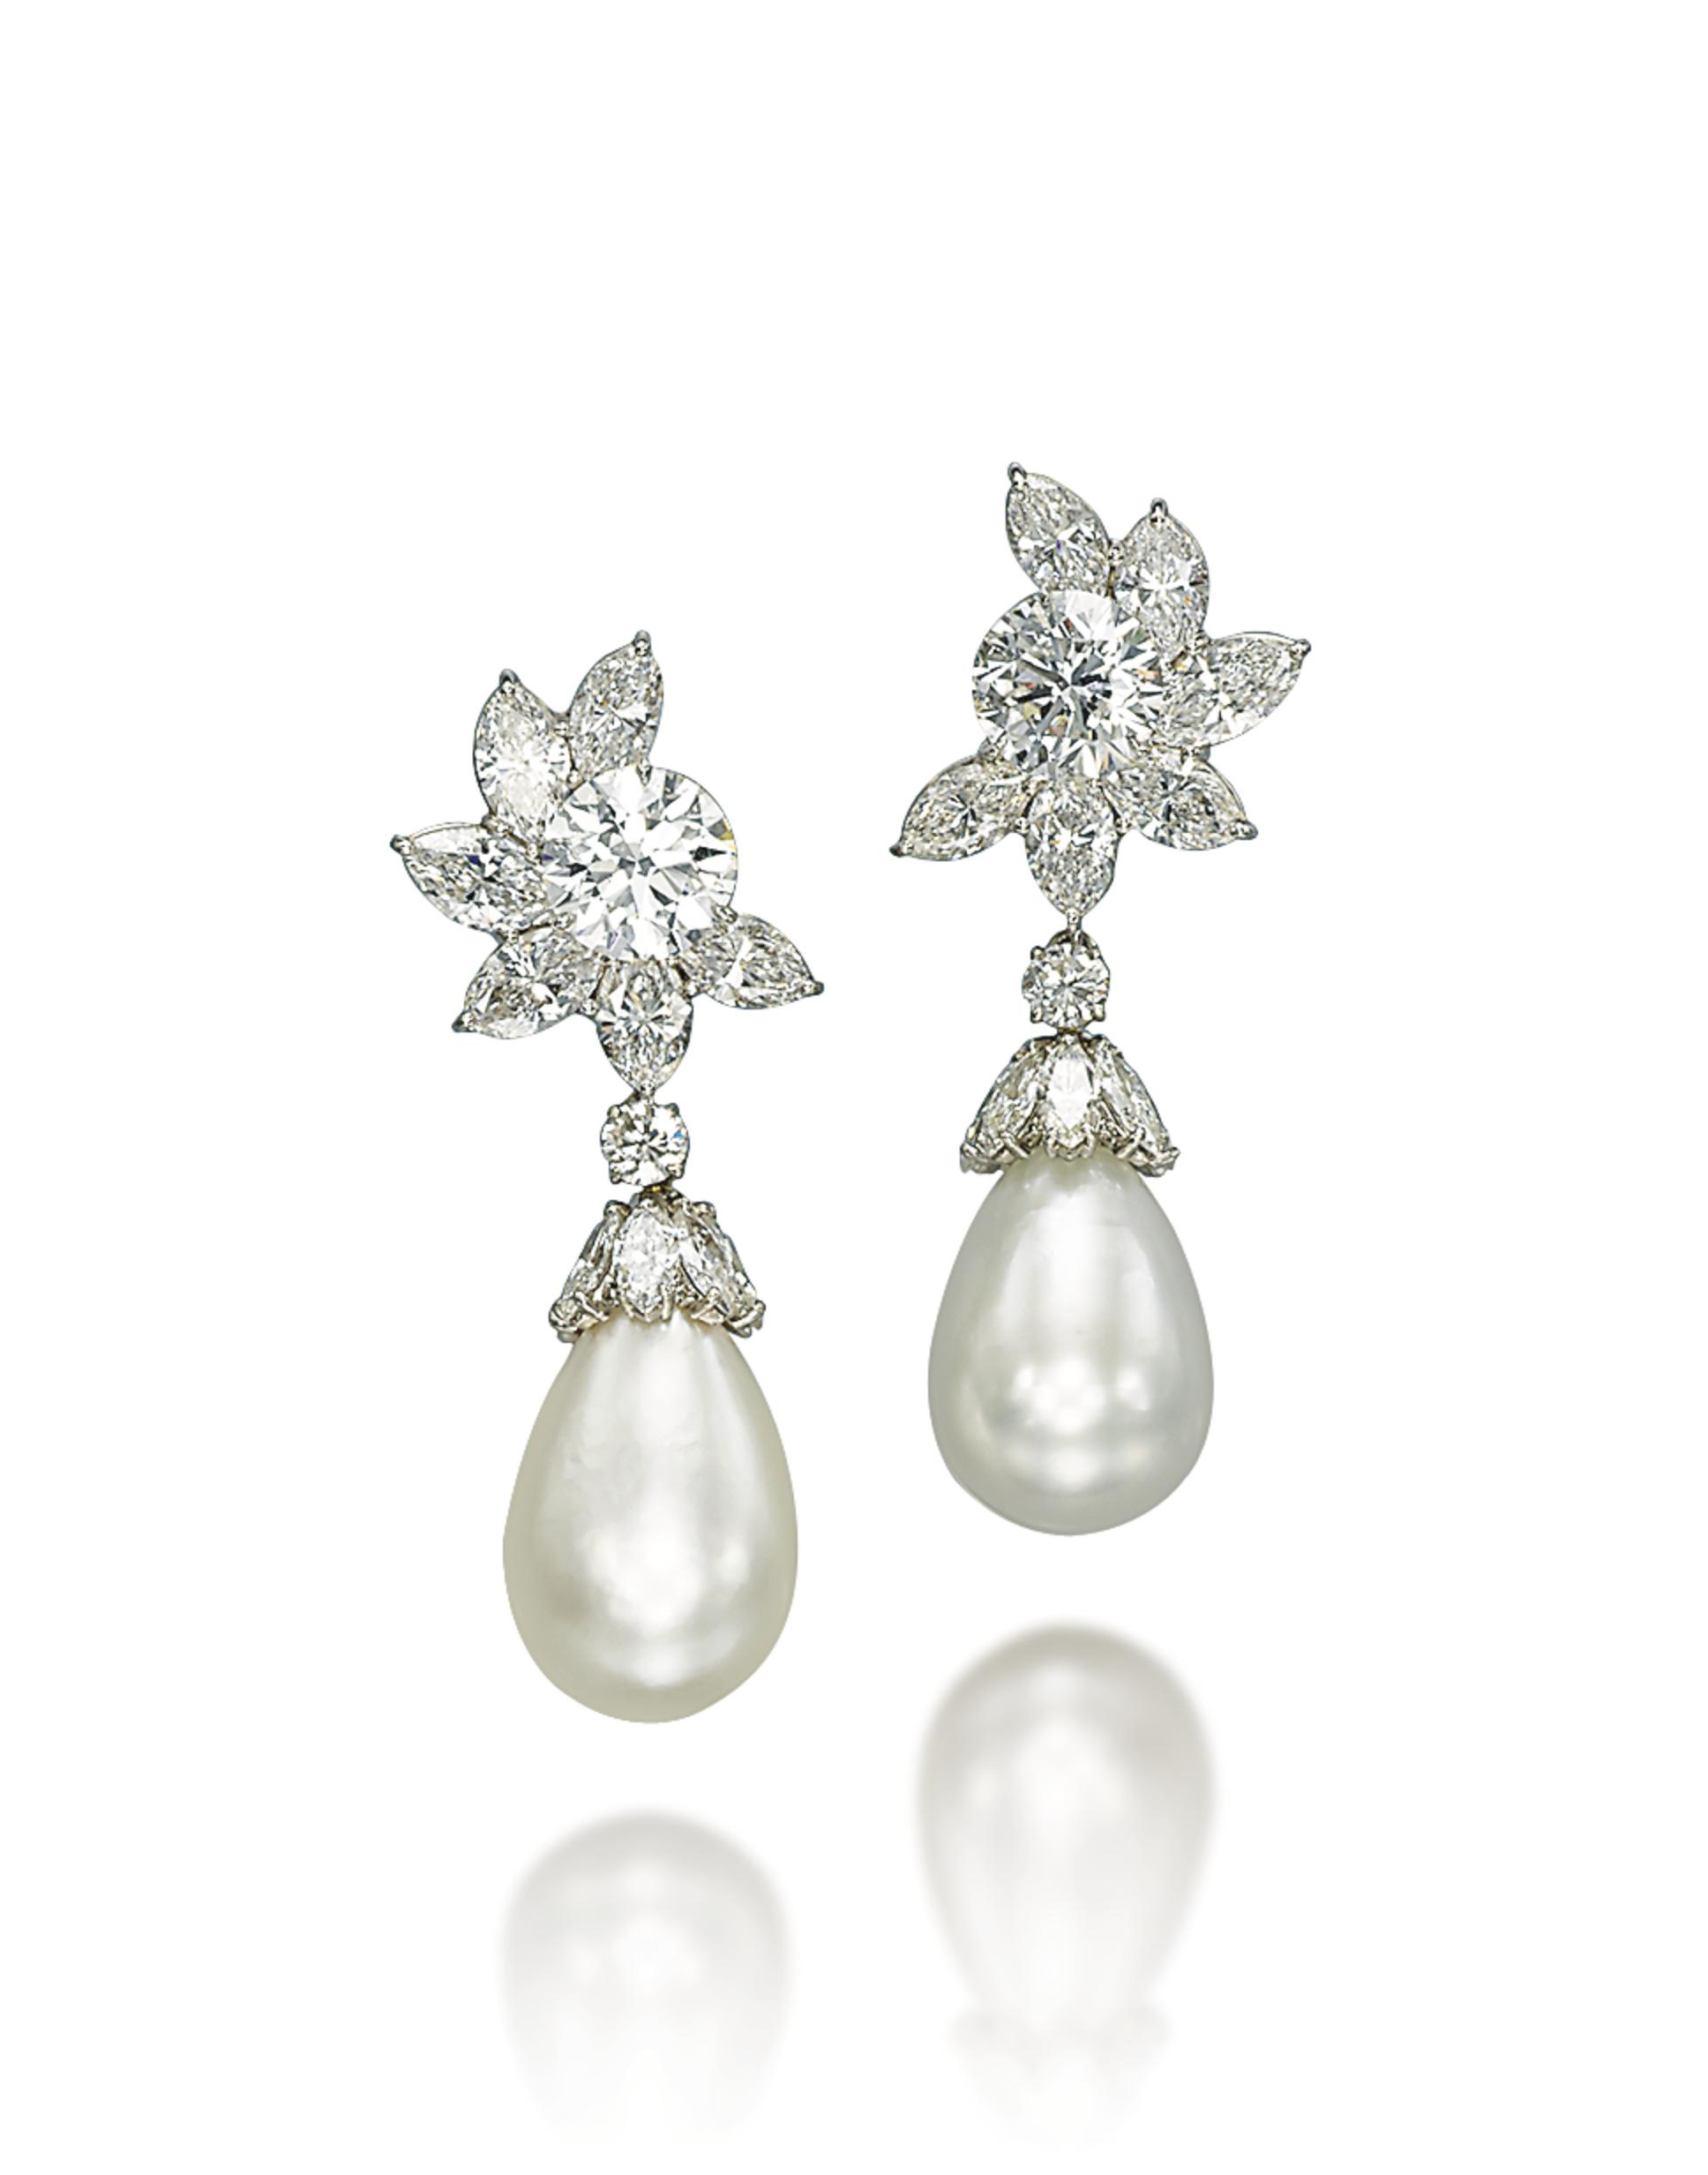 AN EXCEPTIONAL PAIR OF NATURAL PEARL AND DIAMOND EAR PENDANTS, BY HARRY WINSTON